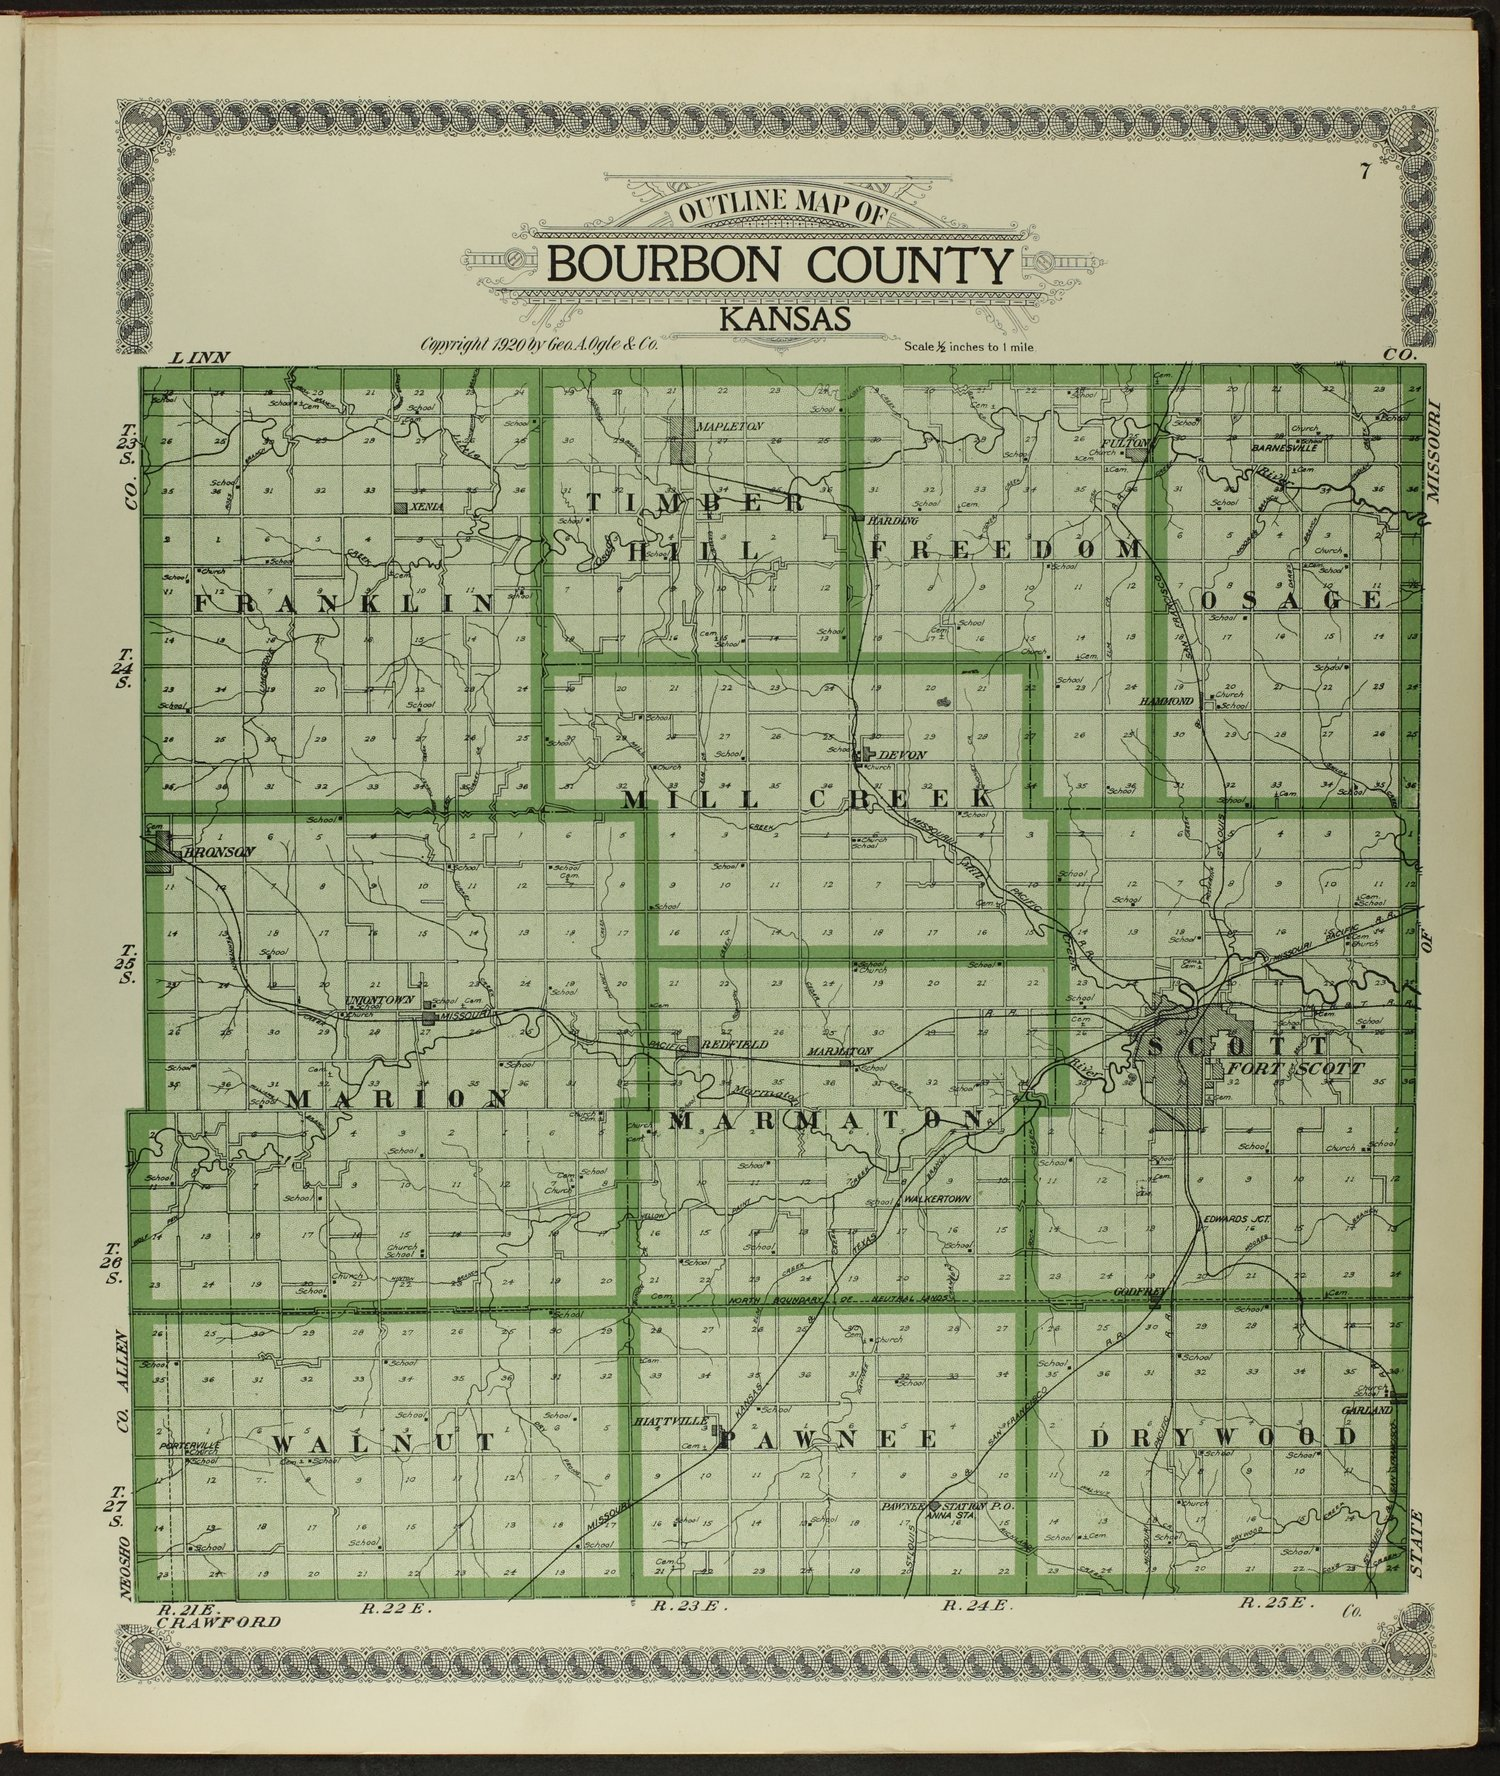 Standard atlas of Bourbon County, Kansas - 7